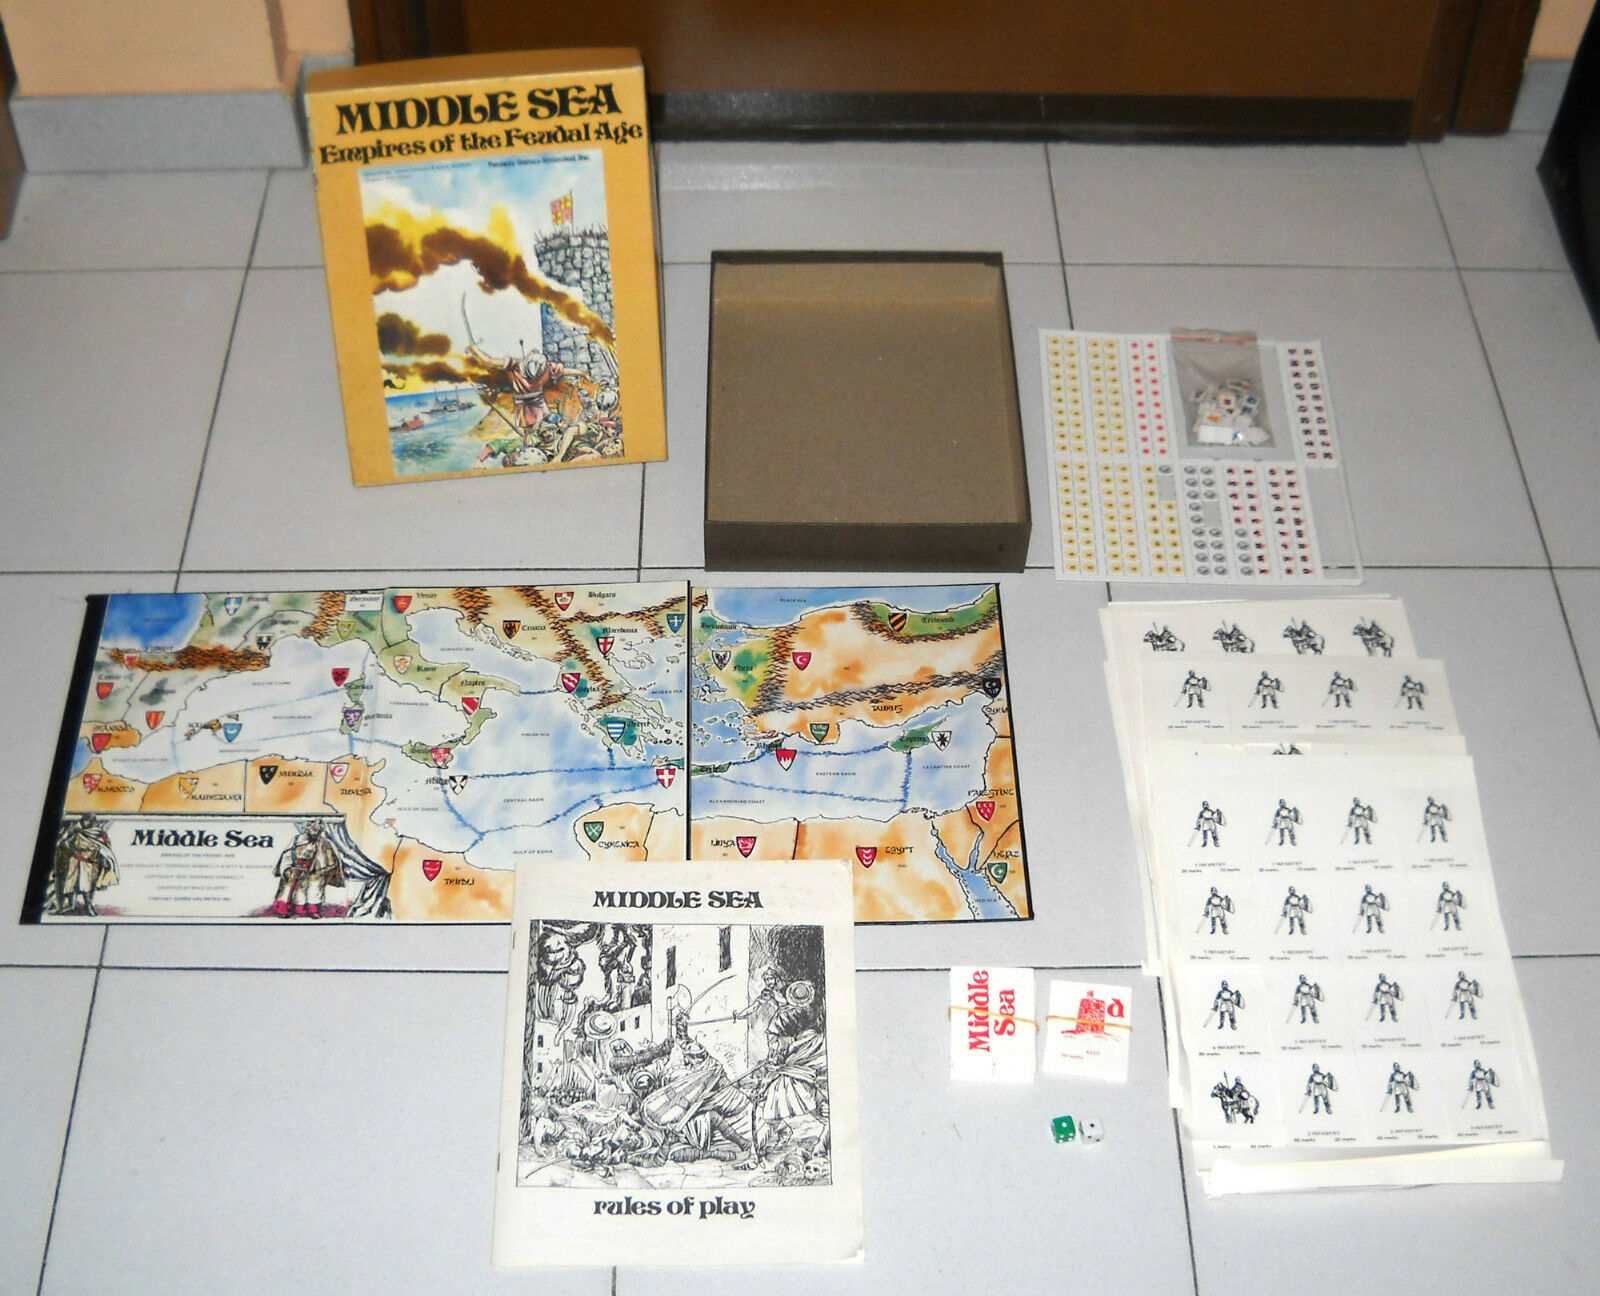 MIDDLE SEA Empires of the Féodal Âge – Fantasy games 1979 PARFAIT